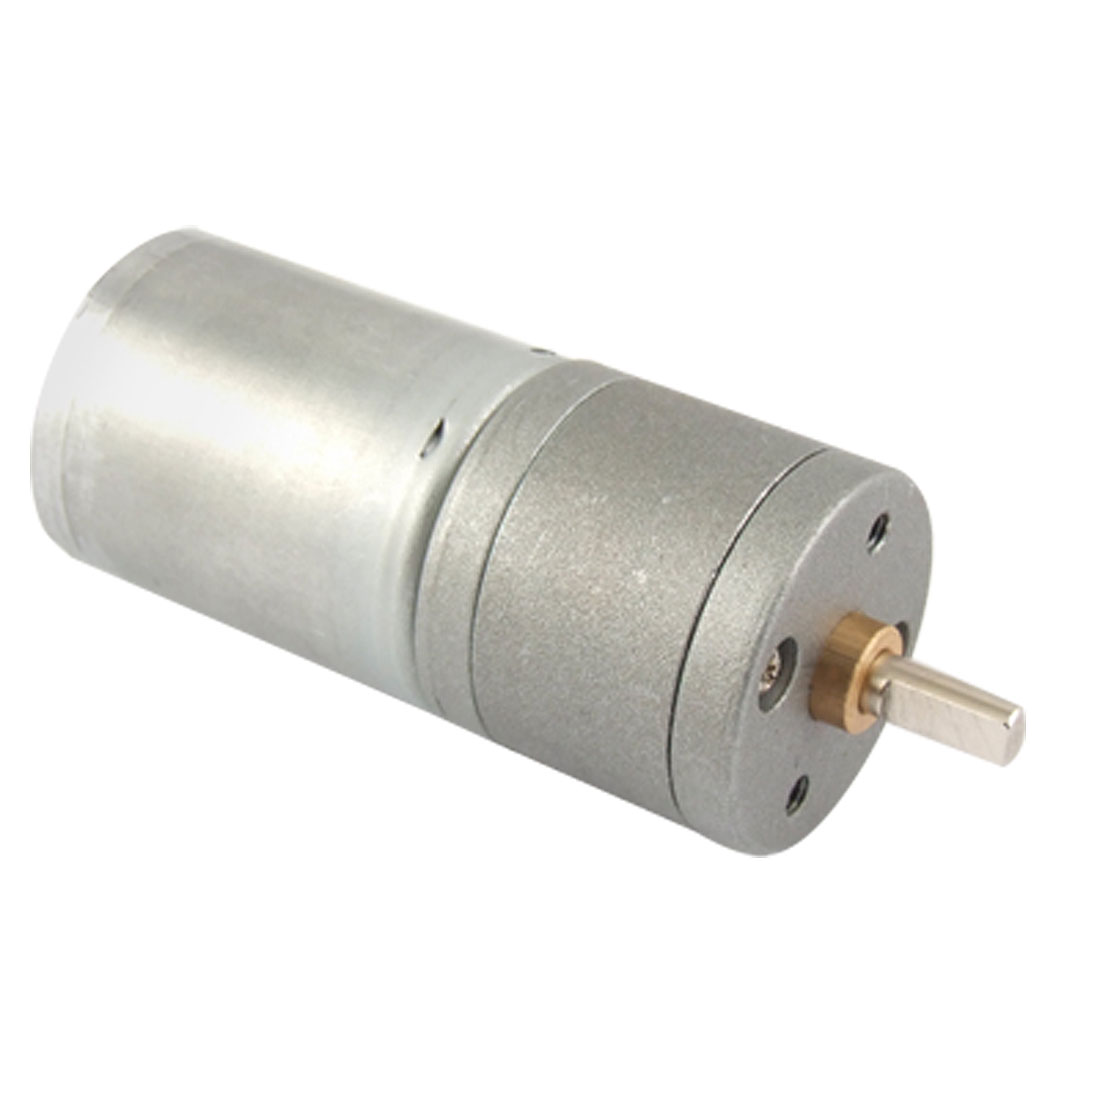 DC12V 40-50mA 80RPM Round Shape DC Geared Motor Electric Parts